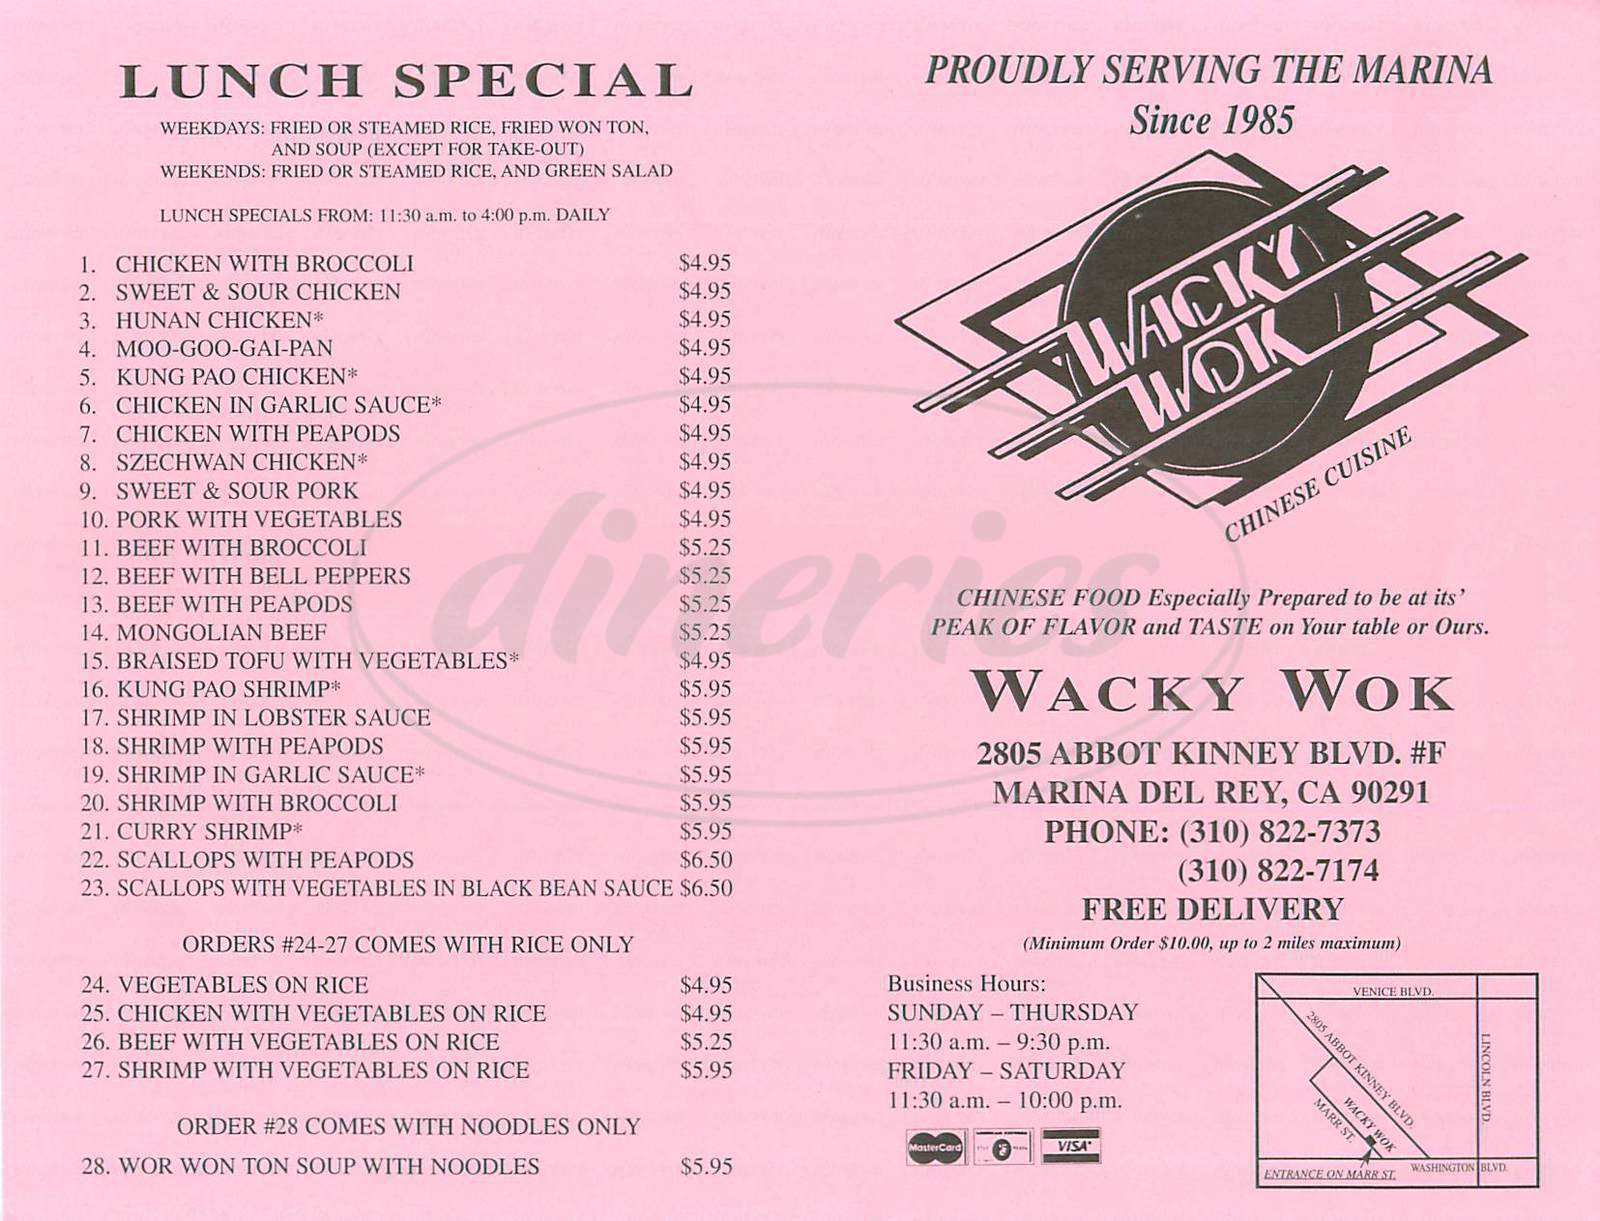 menu for Wacky Wok